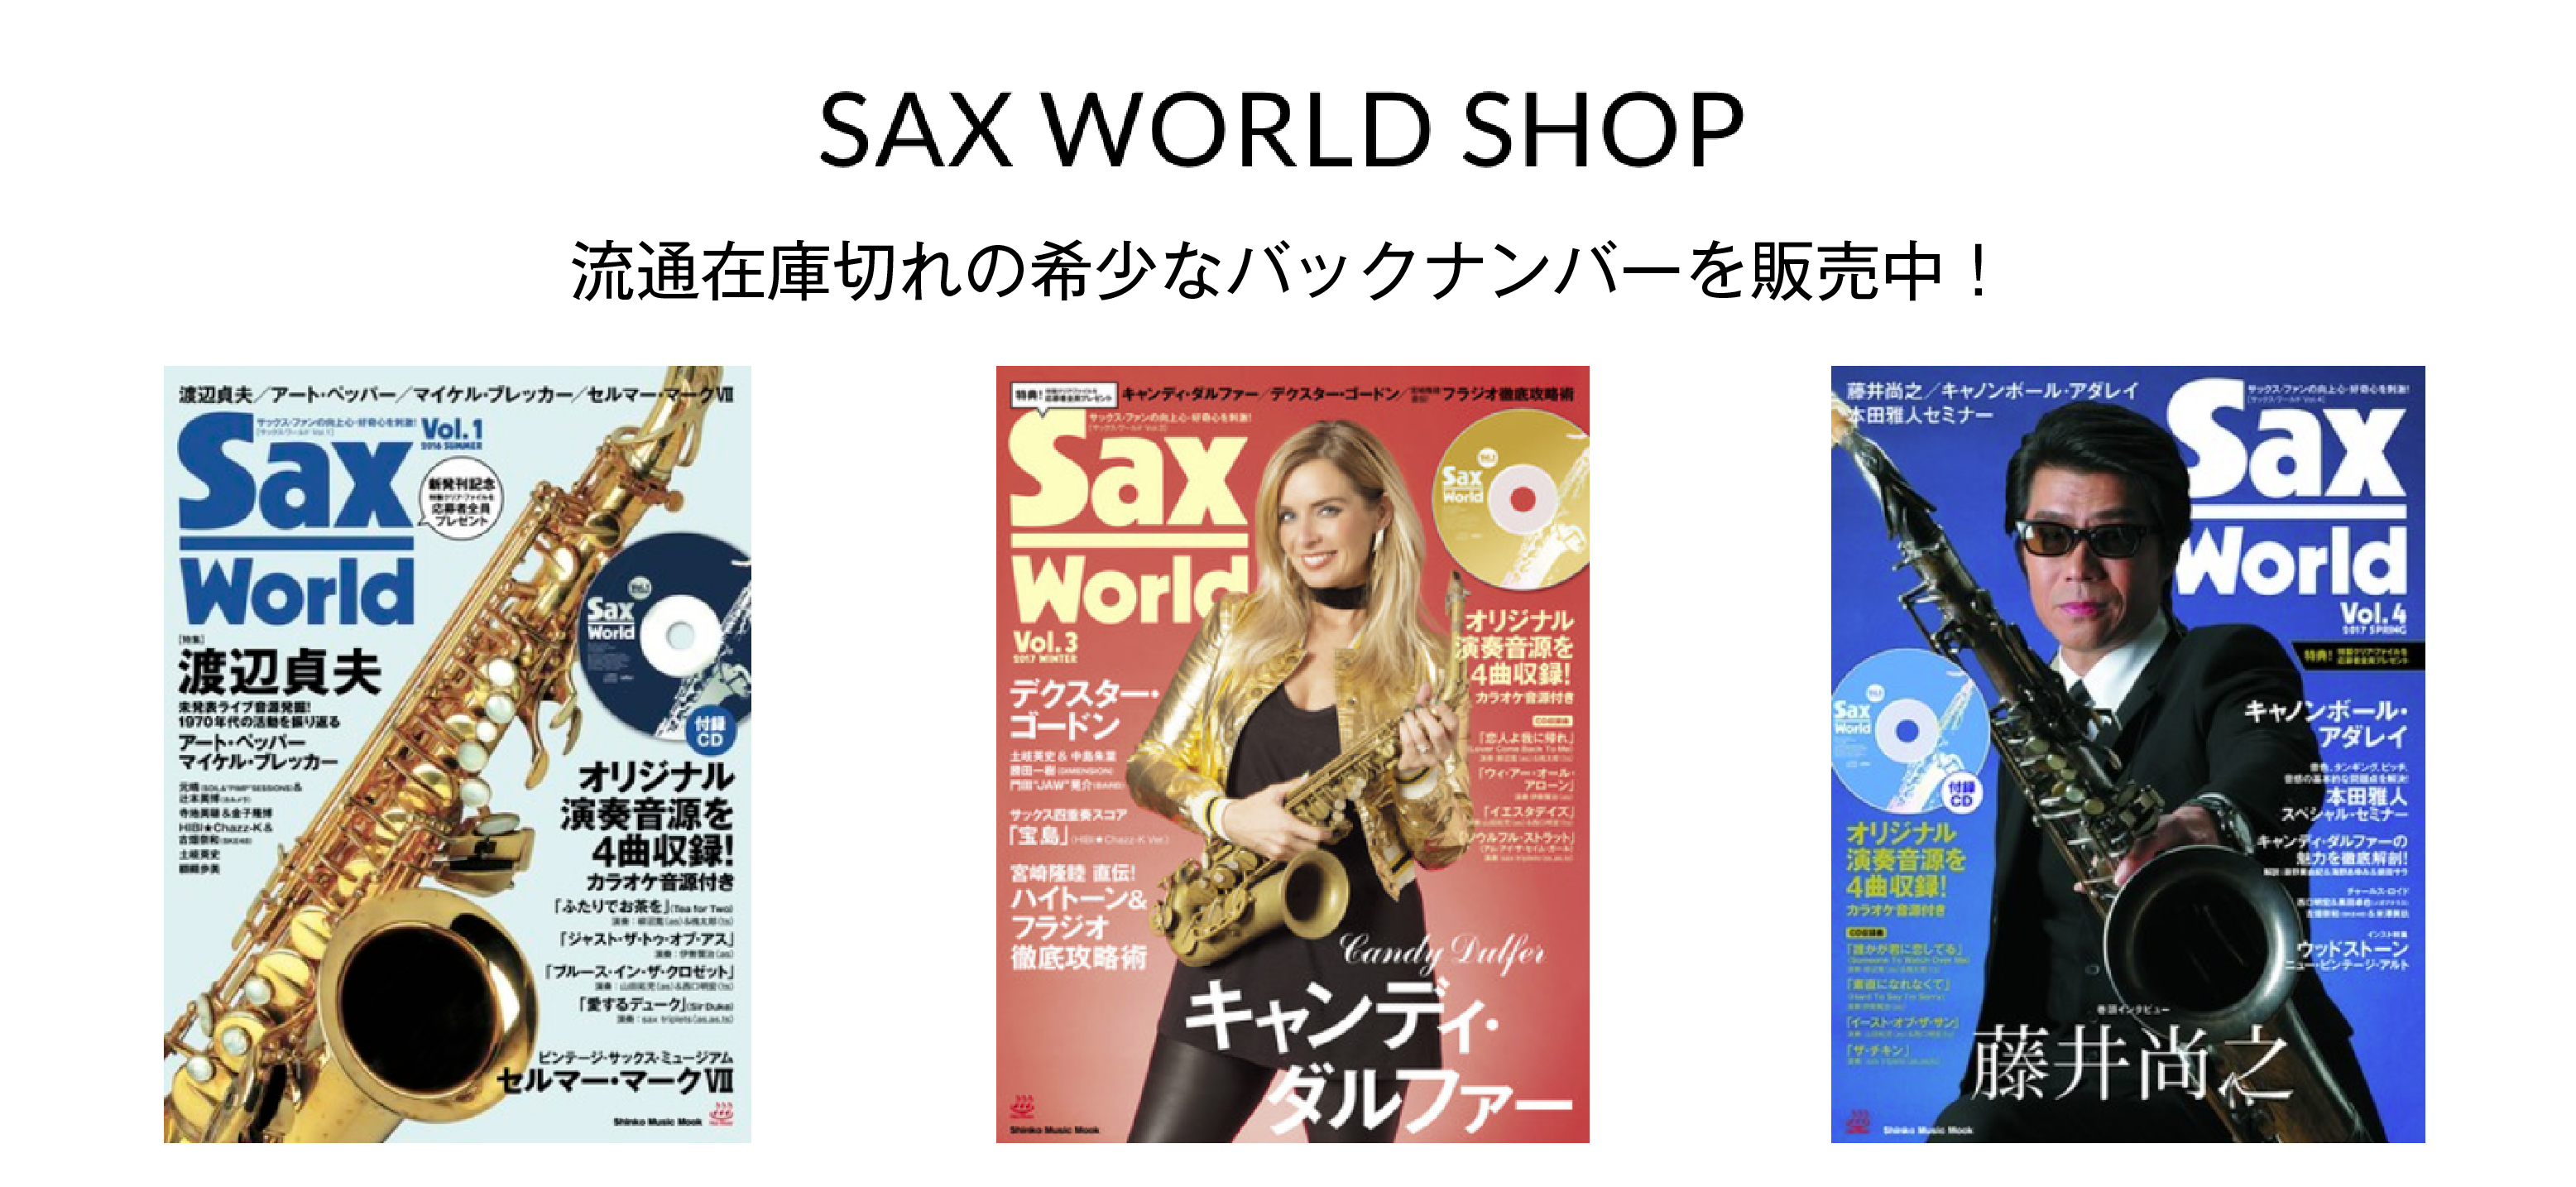 SAX WORLD SHOP